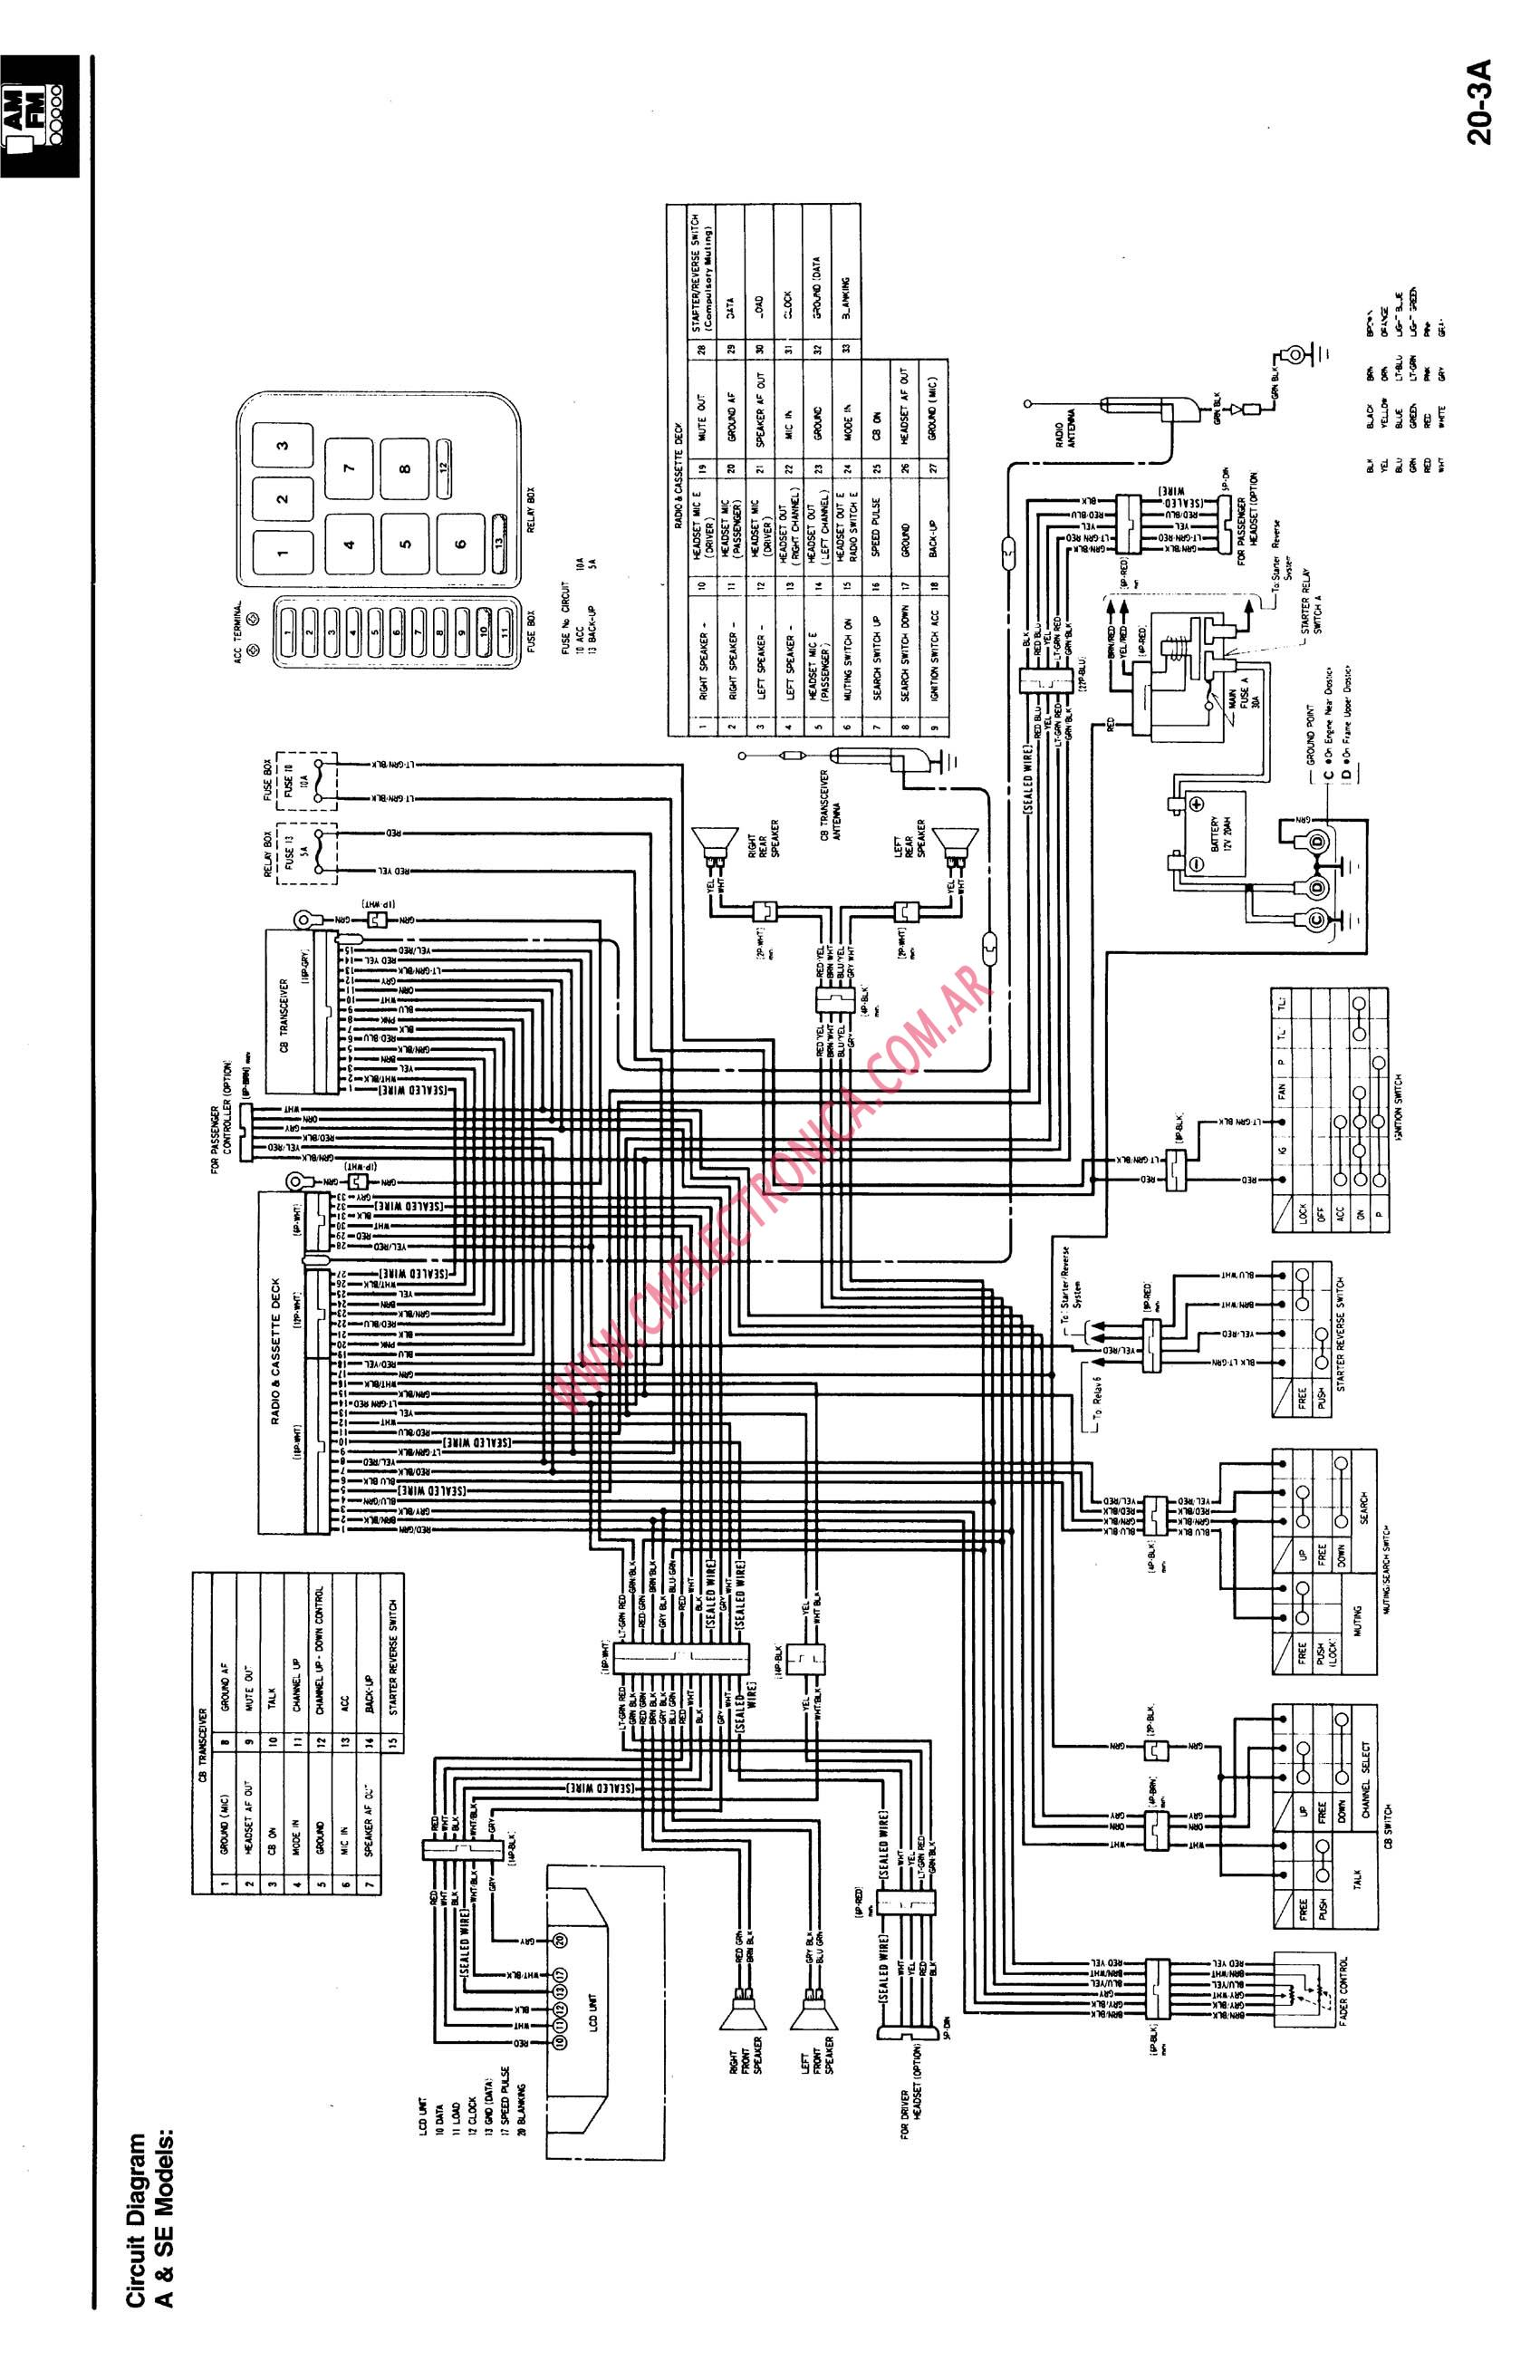 honda gl1500 97 yzf wiring diagram sincgars radio configurations diagrams Basic Electrical Wiring Diagrams at aneh.co